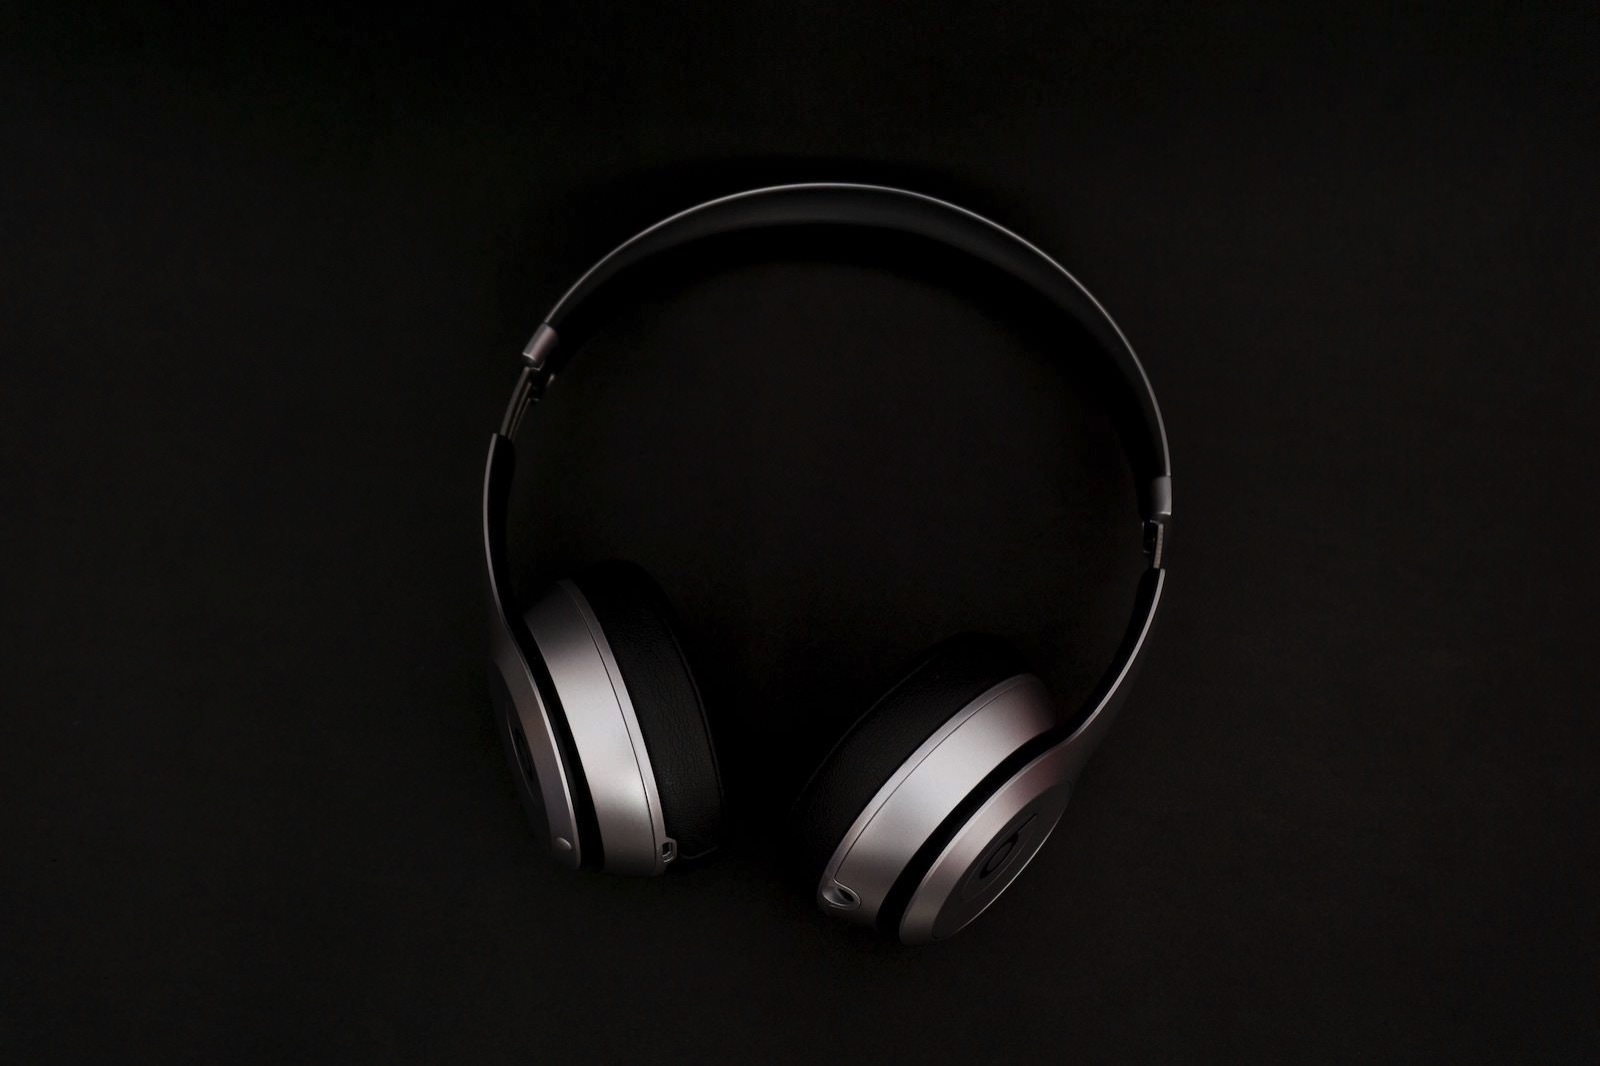 Frank septillion 208829 unsplash headphones beats